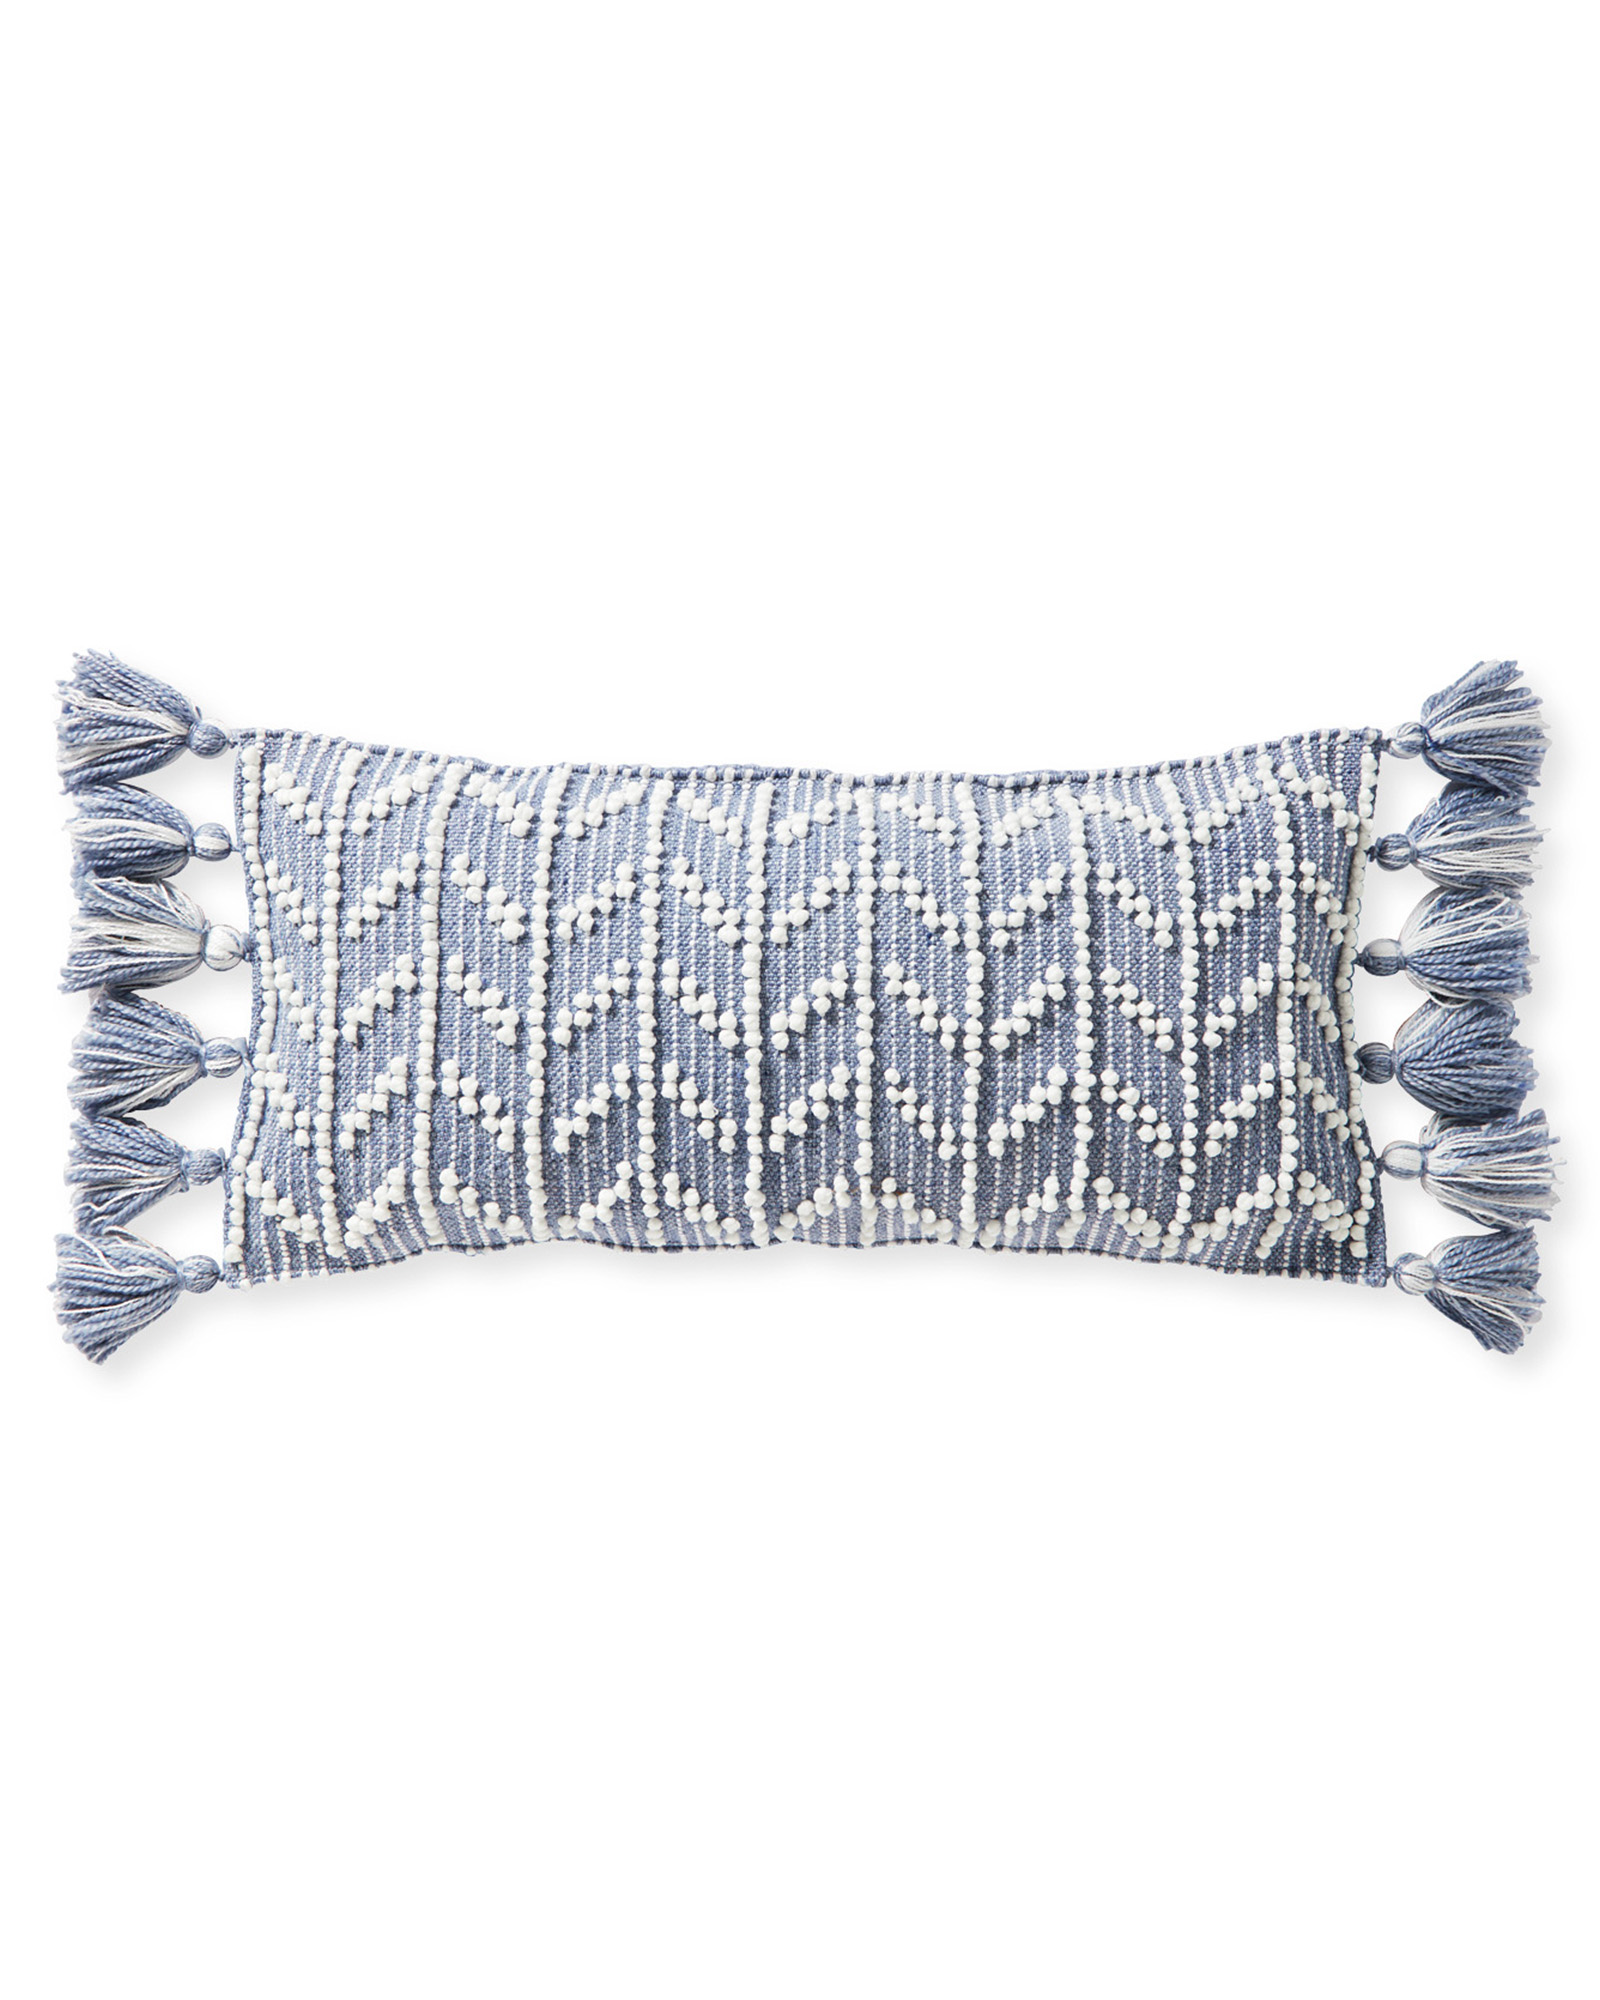 Blue grey pillow with tassels. #pillows #homedecor